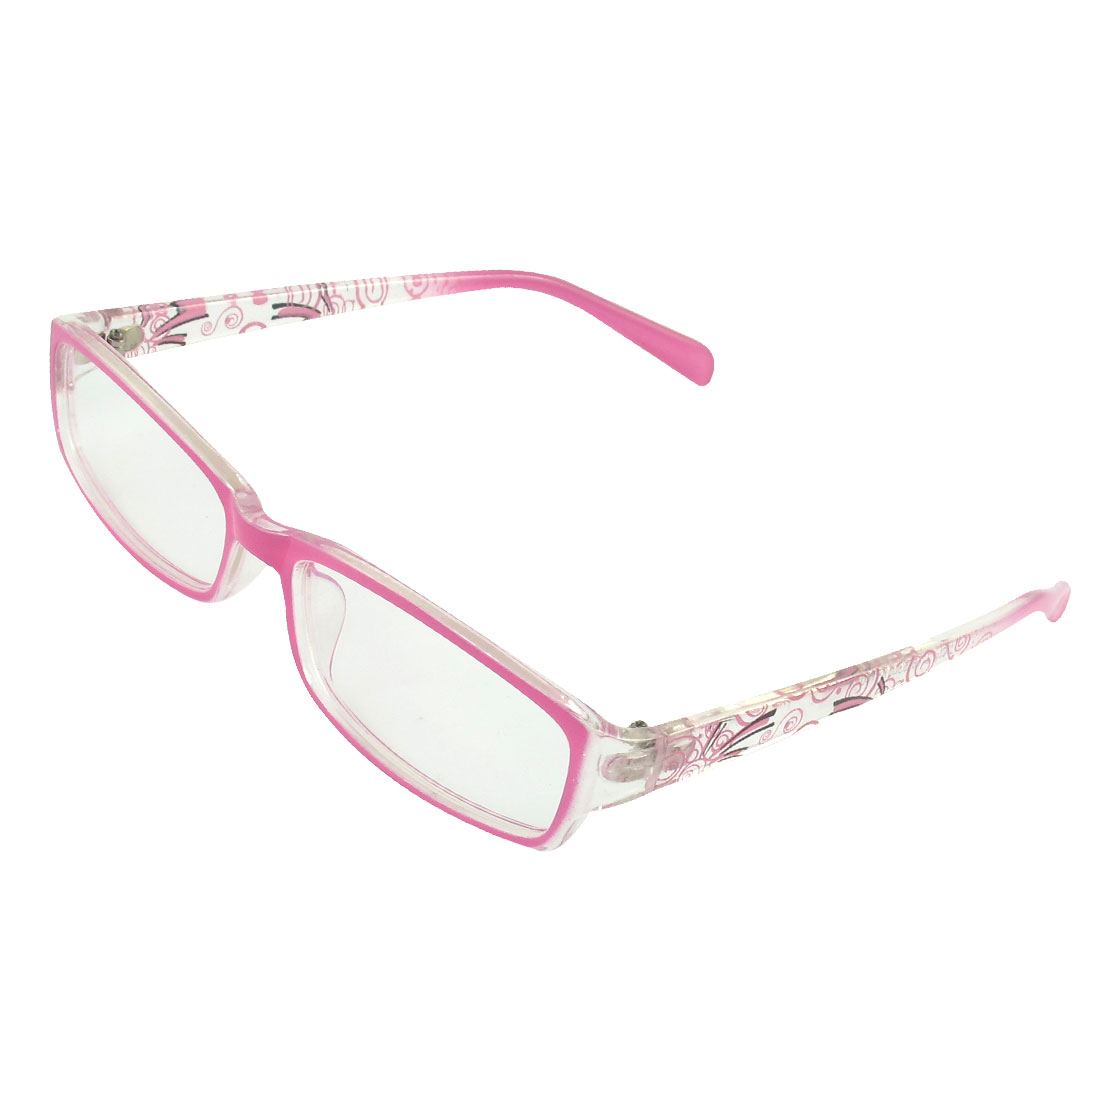 Plastic Full Rim Rectangular Lens Plain Glasses Pink for Women